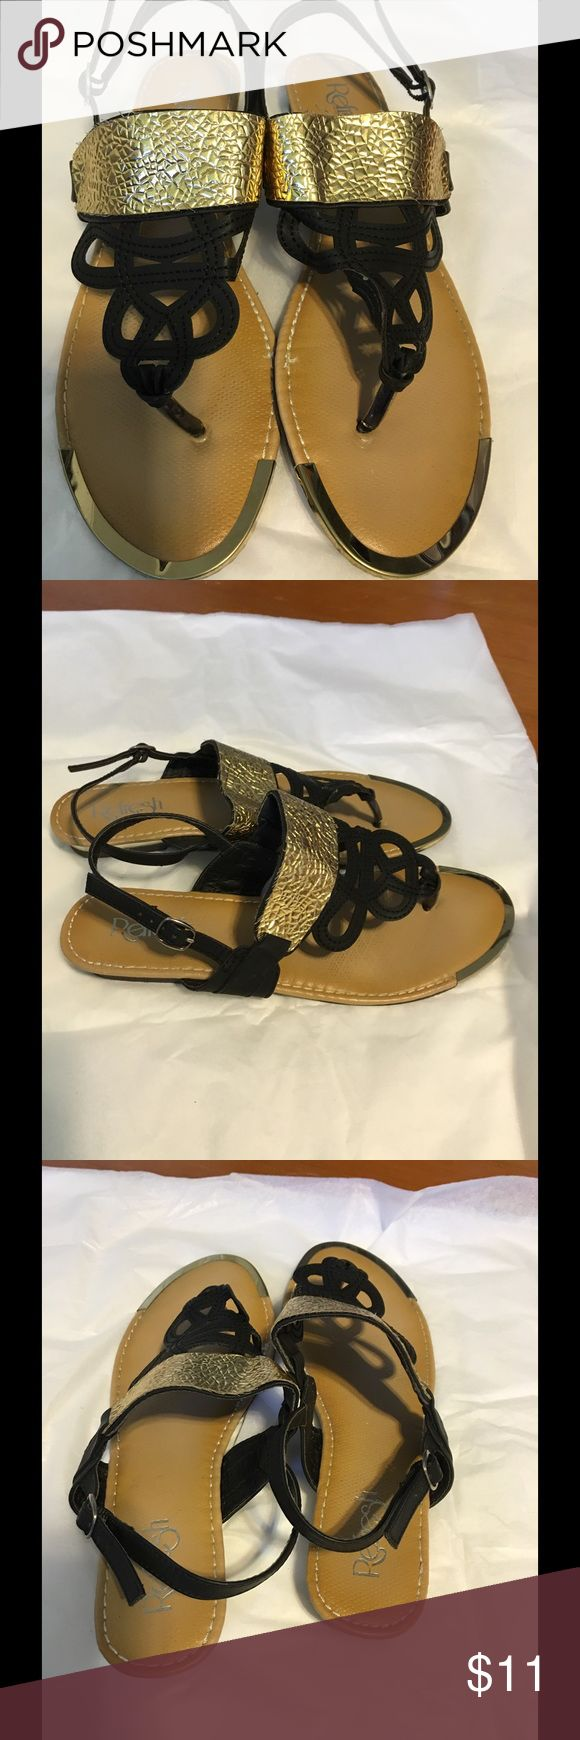 """🎀🍒💕Women's Sandals🎀🍒💕 🎀🍒💕REFRESH brand black/gold sandals. 🍒Style """"Jetta – 02"""". Size 9. 💕Used only once. 🌸In good preowned condition. 💐Adjustable heel strap.🎀🍒💕 Refresh Shoes Sandals"""